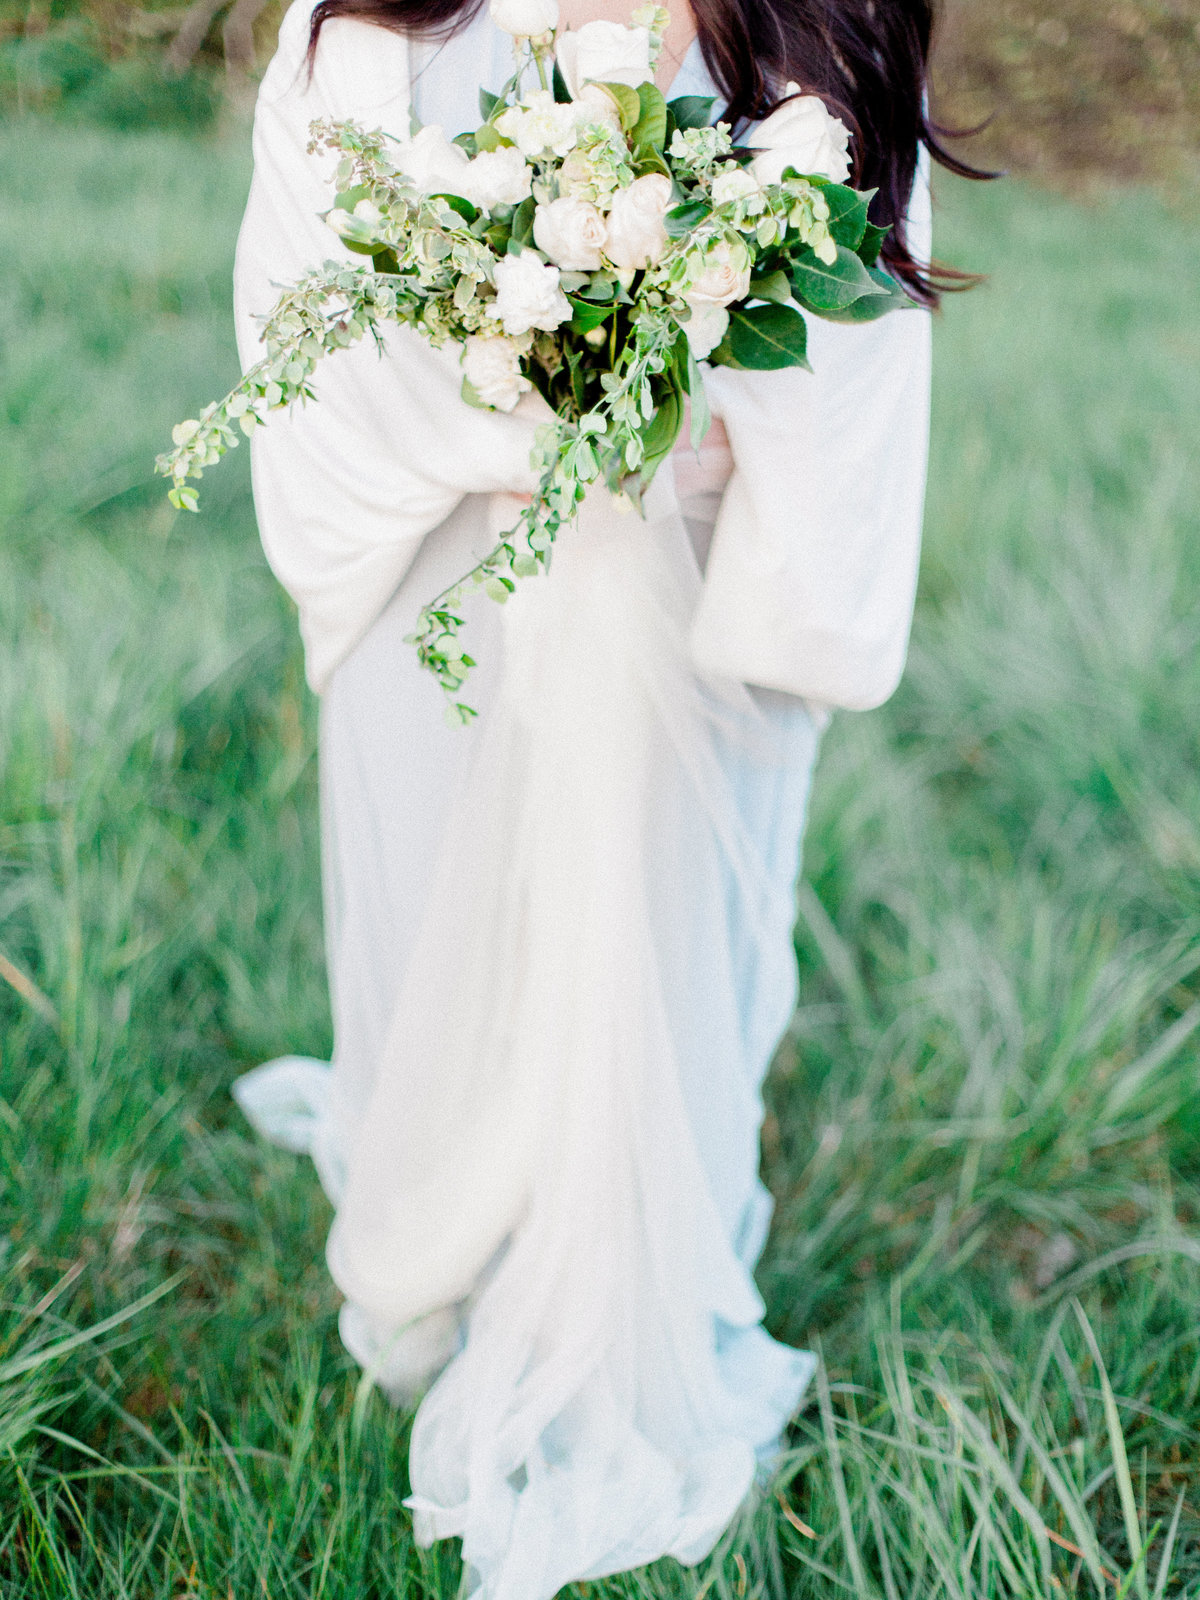 WHEN-SHE-KNEW-PHOTOGRAPHY-ADORN-MAGAZINE-ETHEREAL-BRIDAL-WEDDING-EDITORIAL-OREGON-25